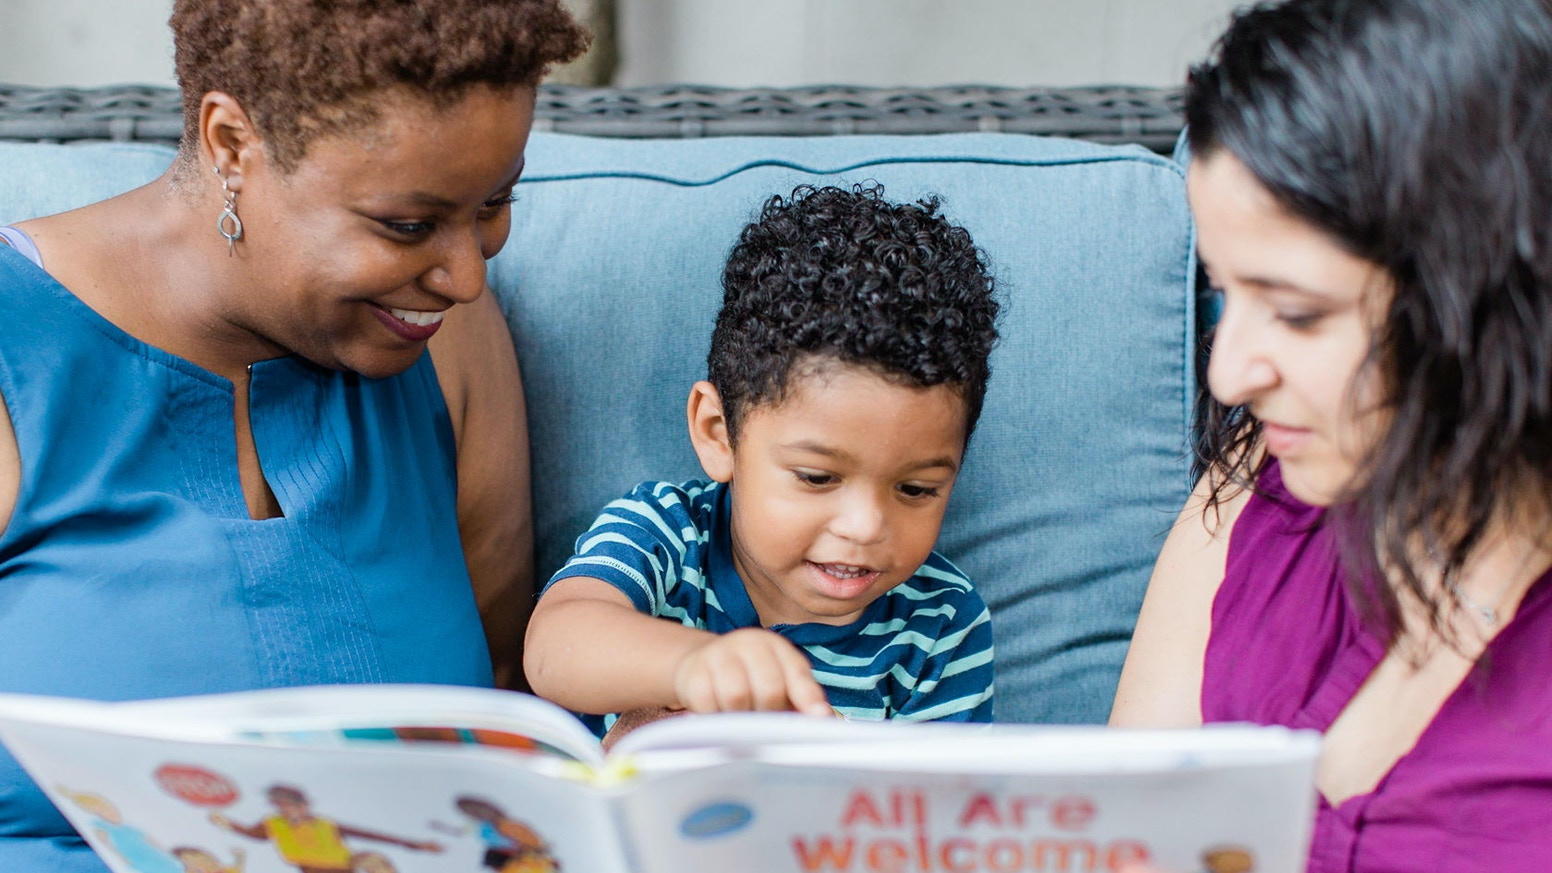 Toolkits & Book Club to help you start kid-friendly conversations that matter.